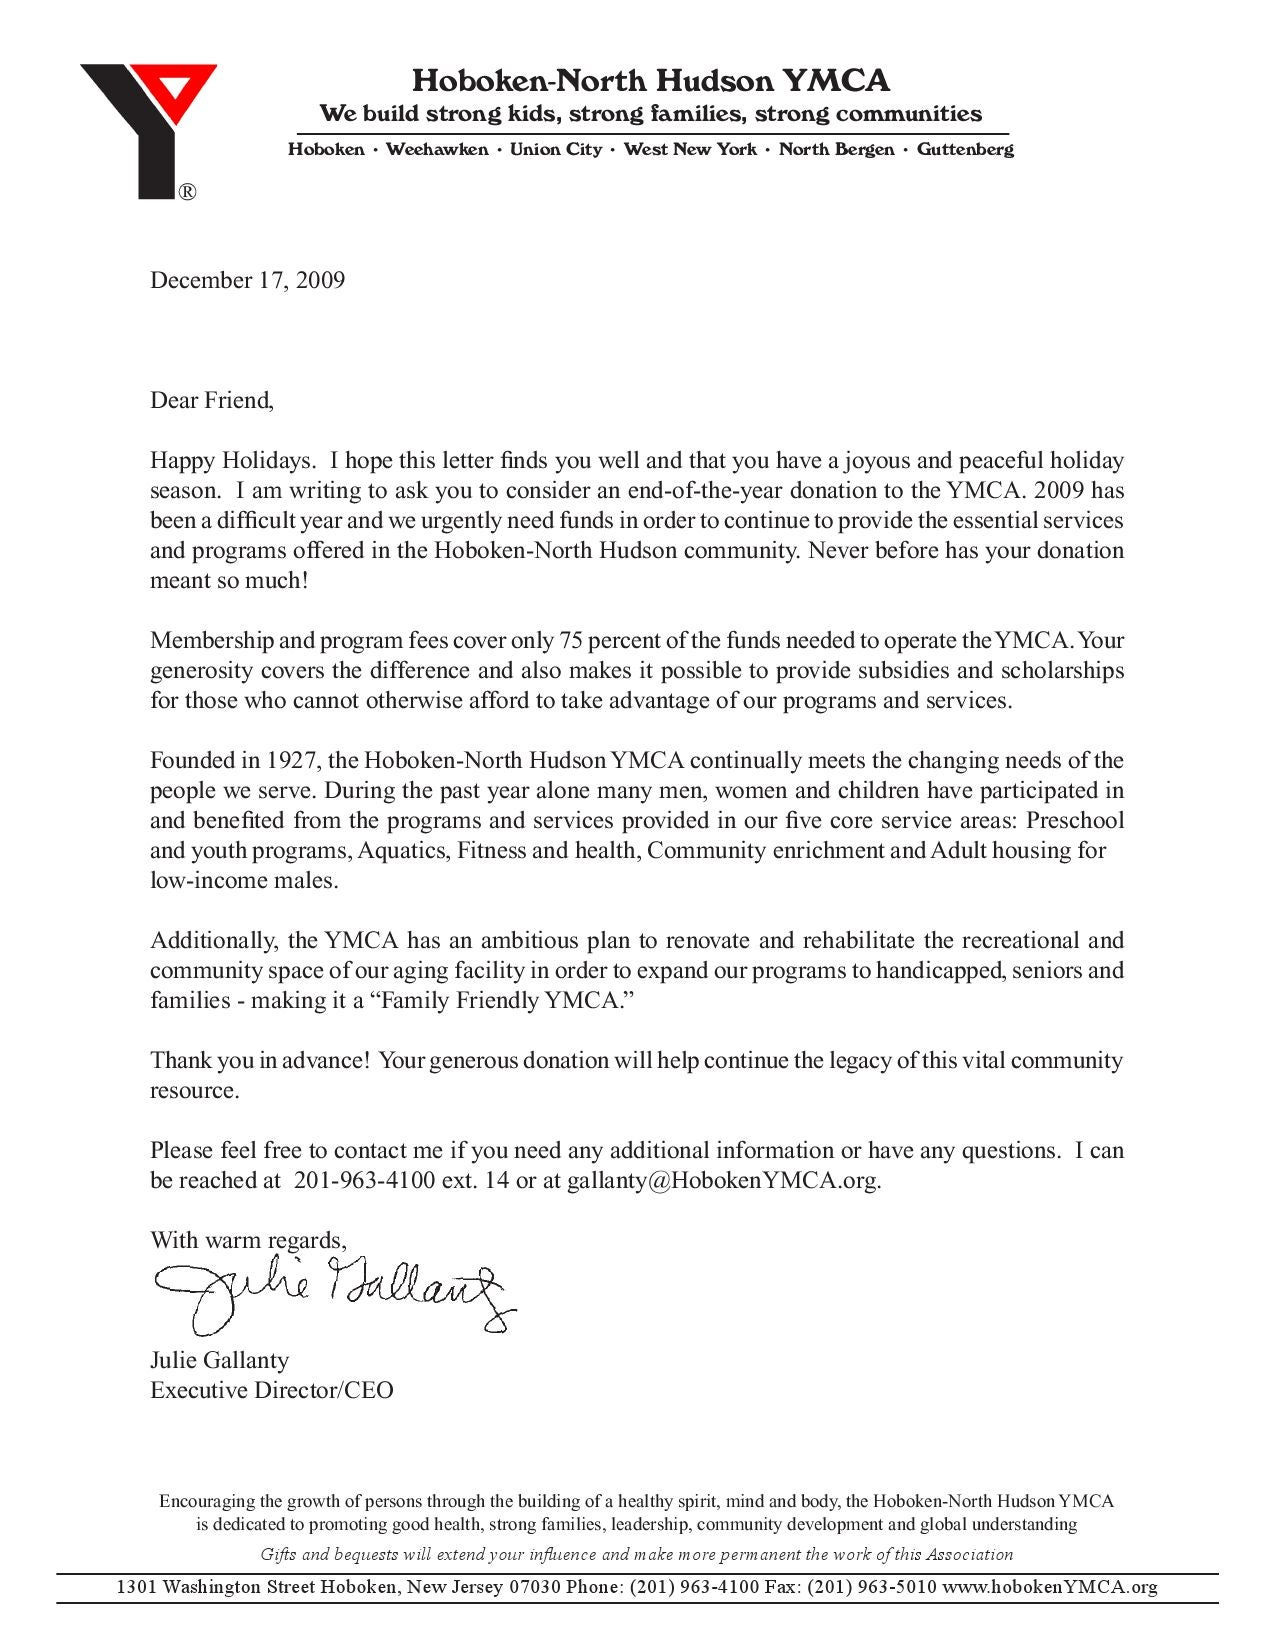 Hoboken North udson YMCA end of year Letter 2009 by The Hoboken